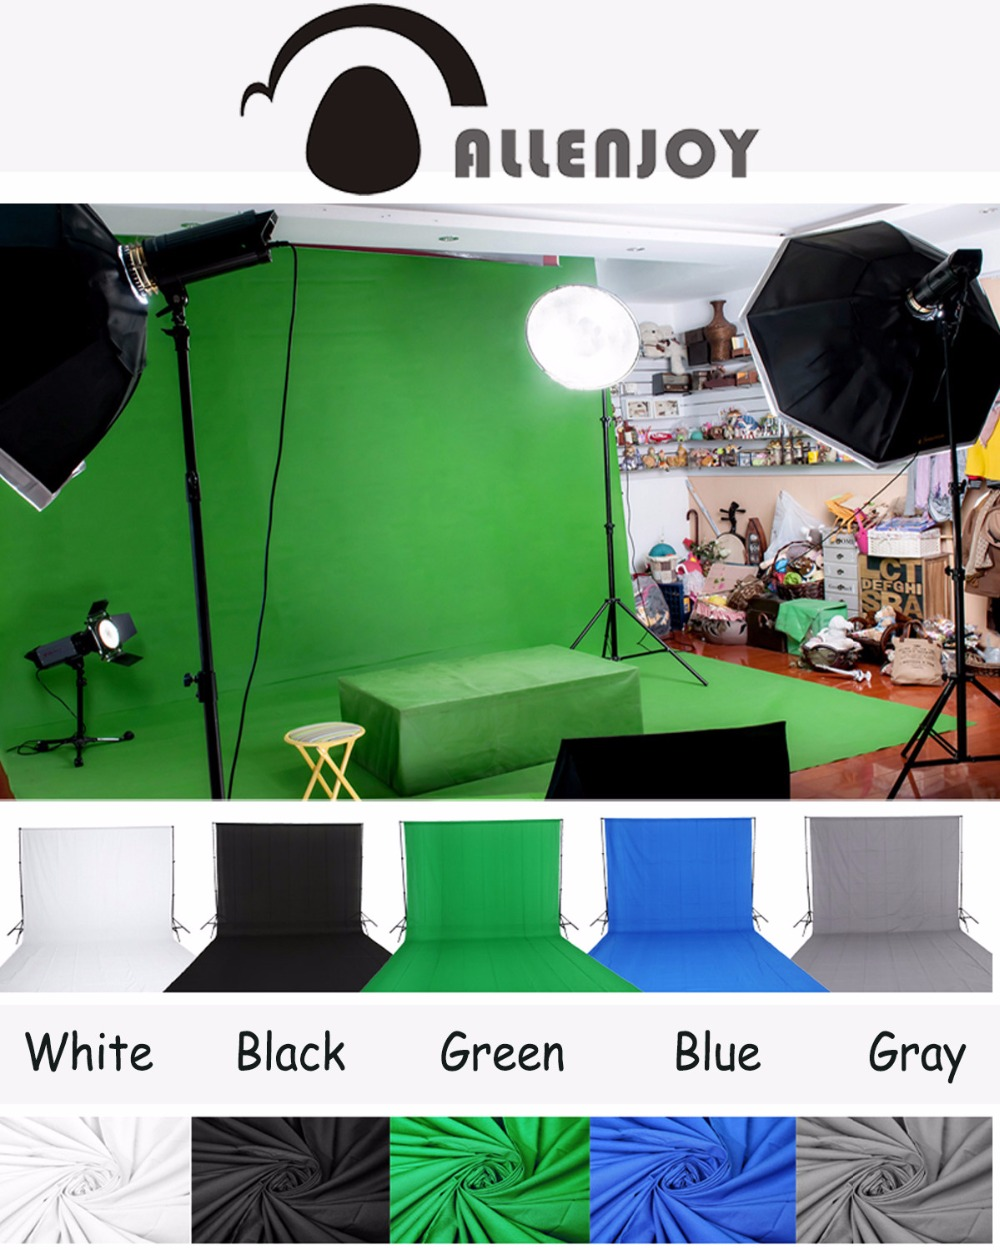 Allenjoy Green screen background chroma key more color Options Customized Size Professional Photo Lighting Studio allenjoy backdrop spring background green grass light bokeh dots photocall kids baby for photo studio